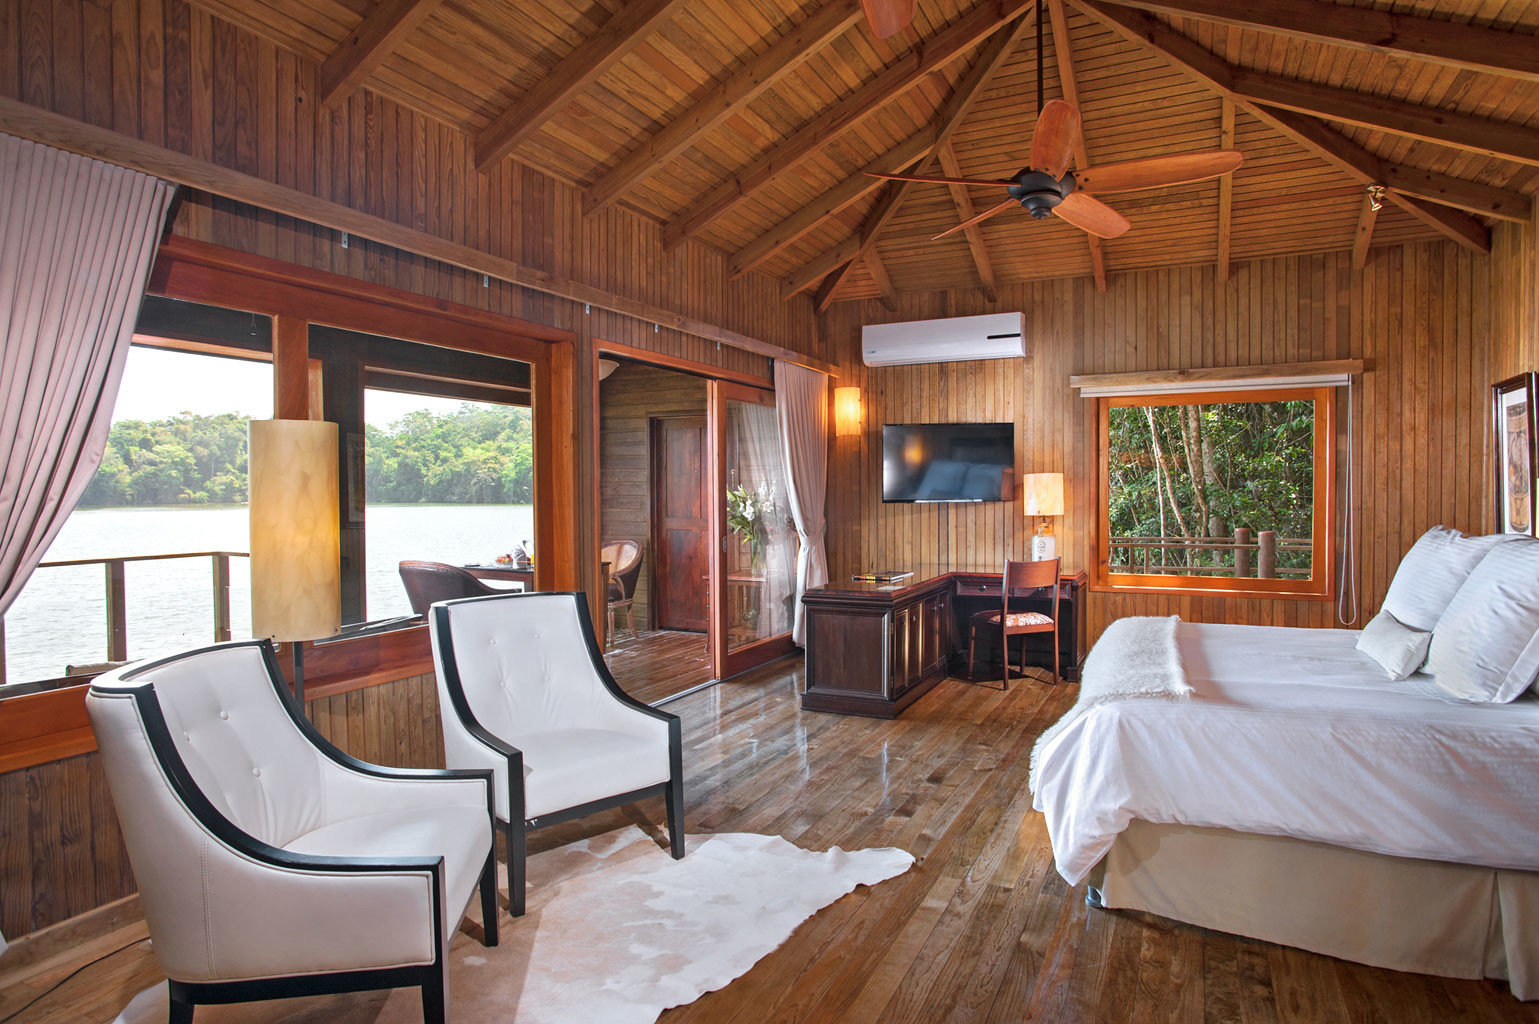 Bedroom Classic Hip Luxury Scenic views Suite Waterfront property cottage Resort home Villa log cabin farmhouse living room mansion